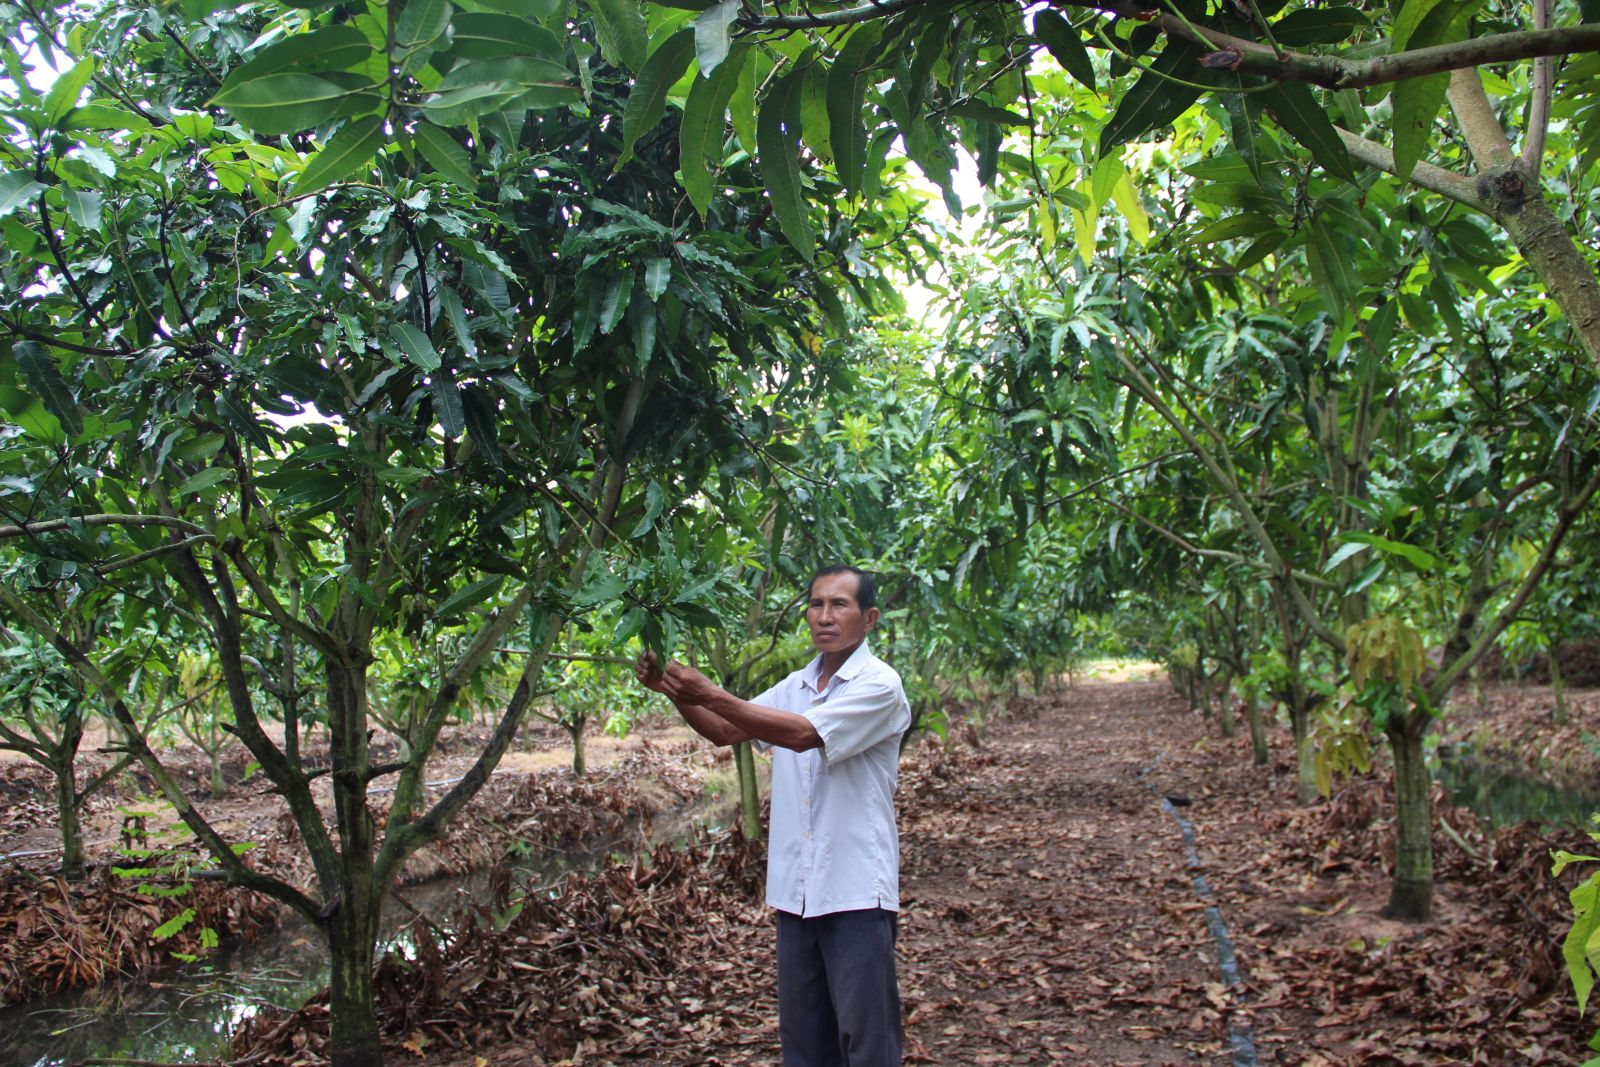 From the inefficient rice area, many farmers have switched to growing fruit trees and bringing higher economic efficiency (Illustrated Photo)